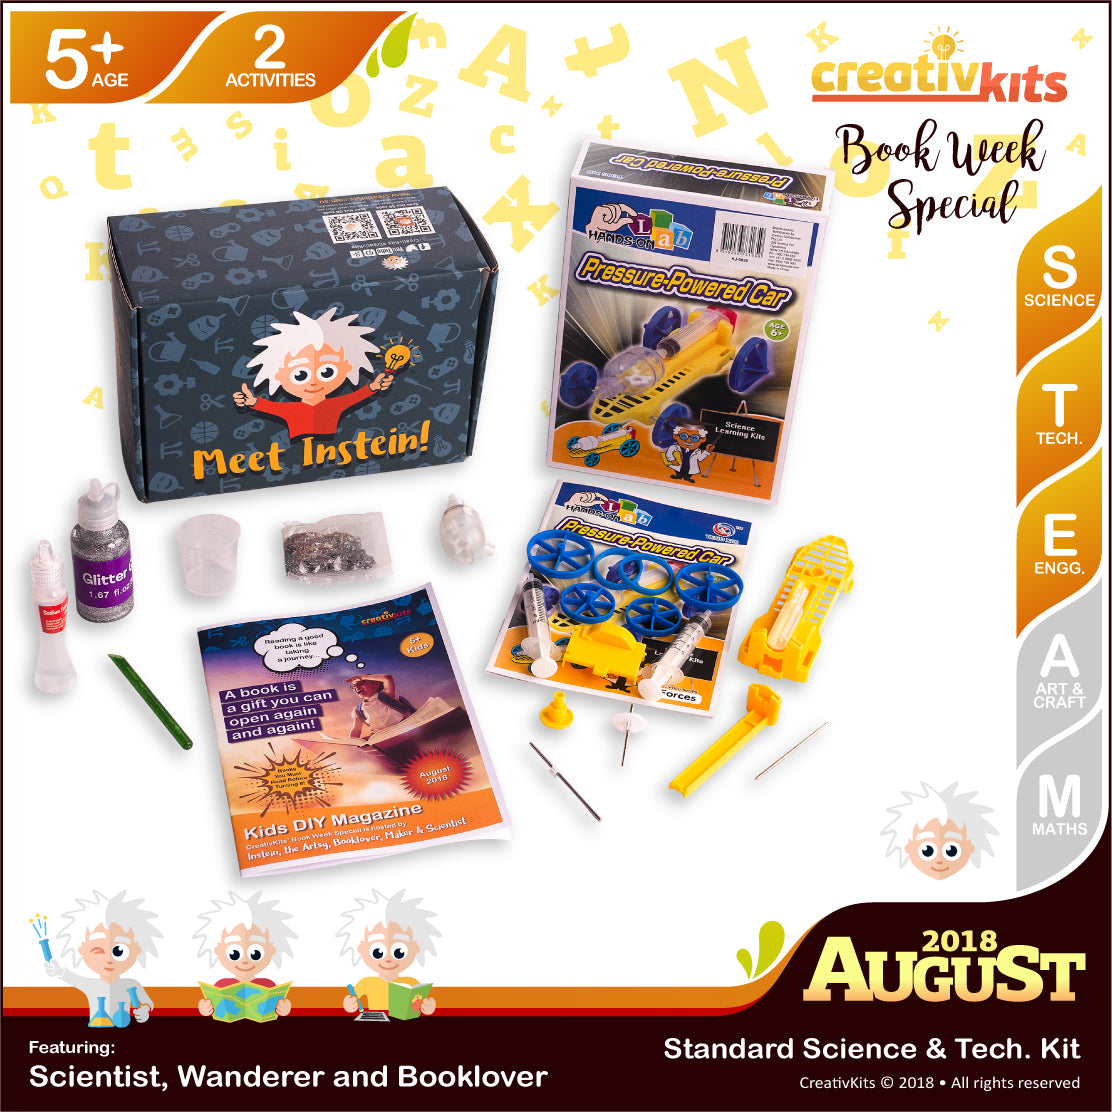 Holographic Slime and Air Pressure Powered Car | August Standard Science & Tech. Kit | Age 5+